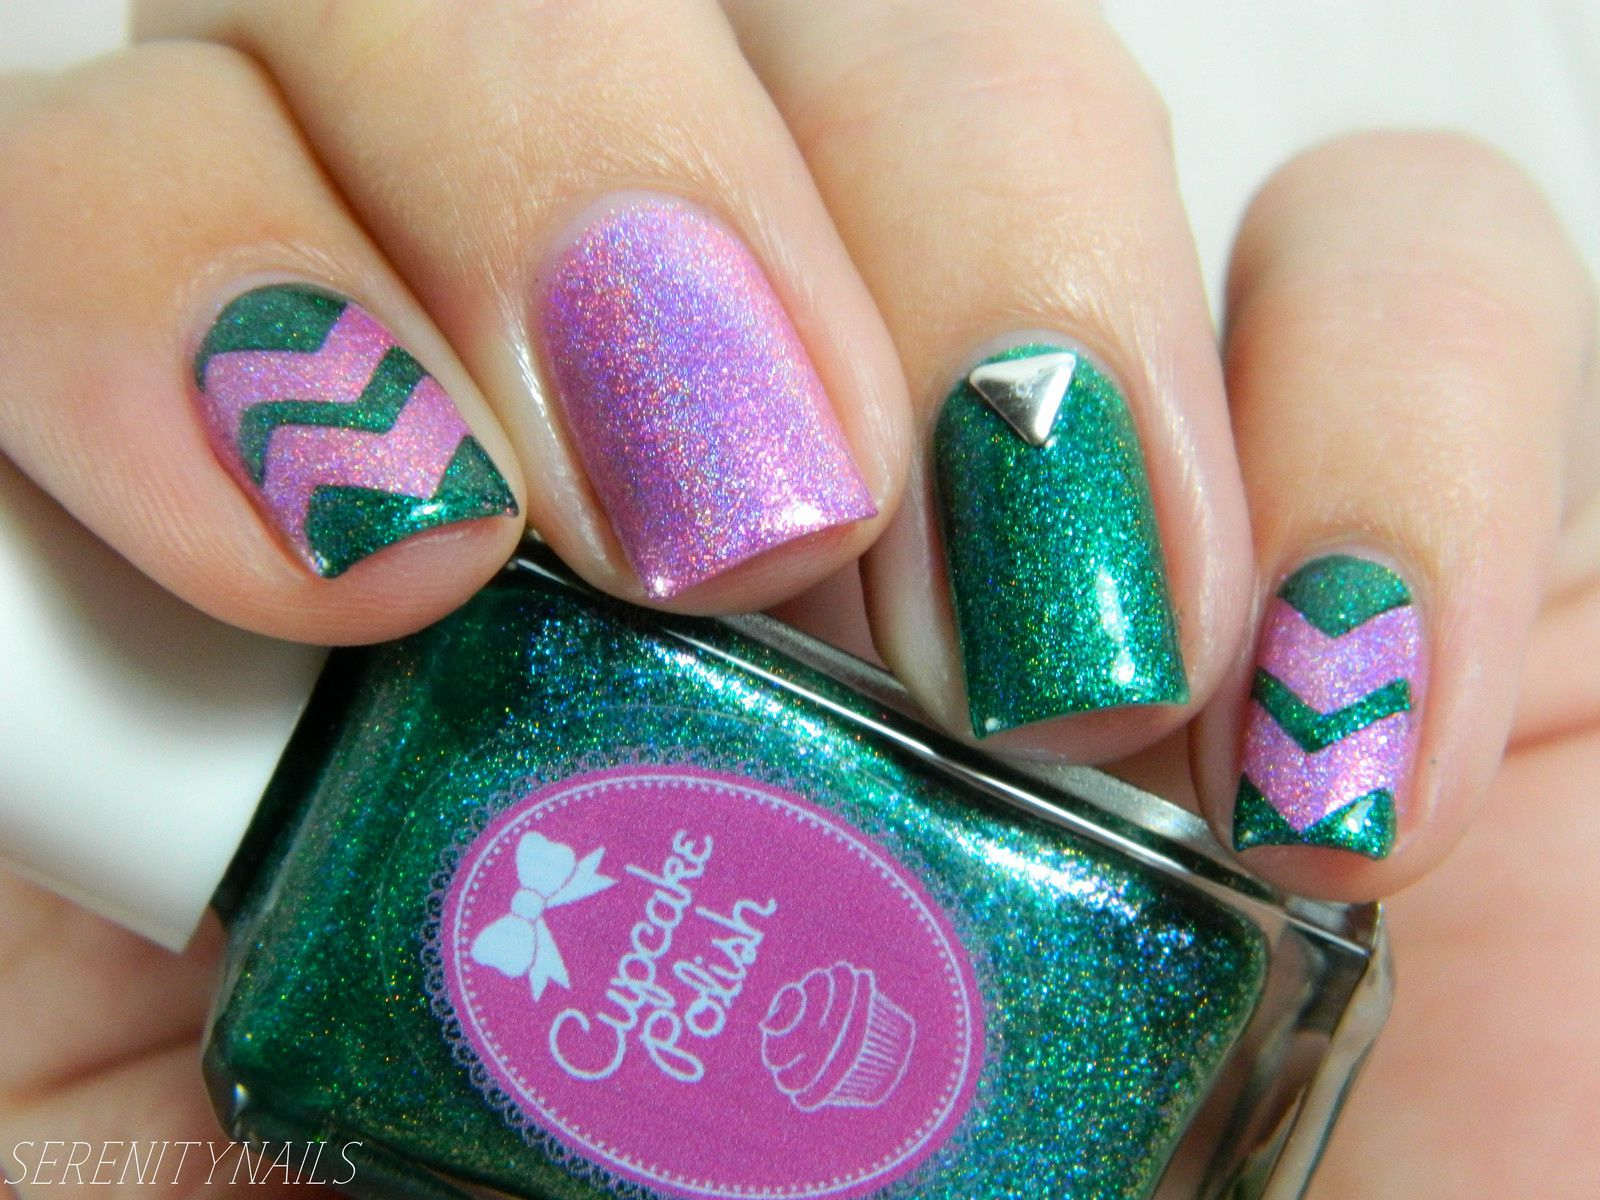 Guest Post: Chevron Nail Art from Christine aka Serenity Nails